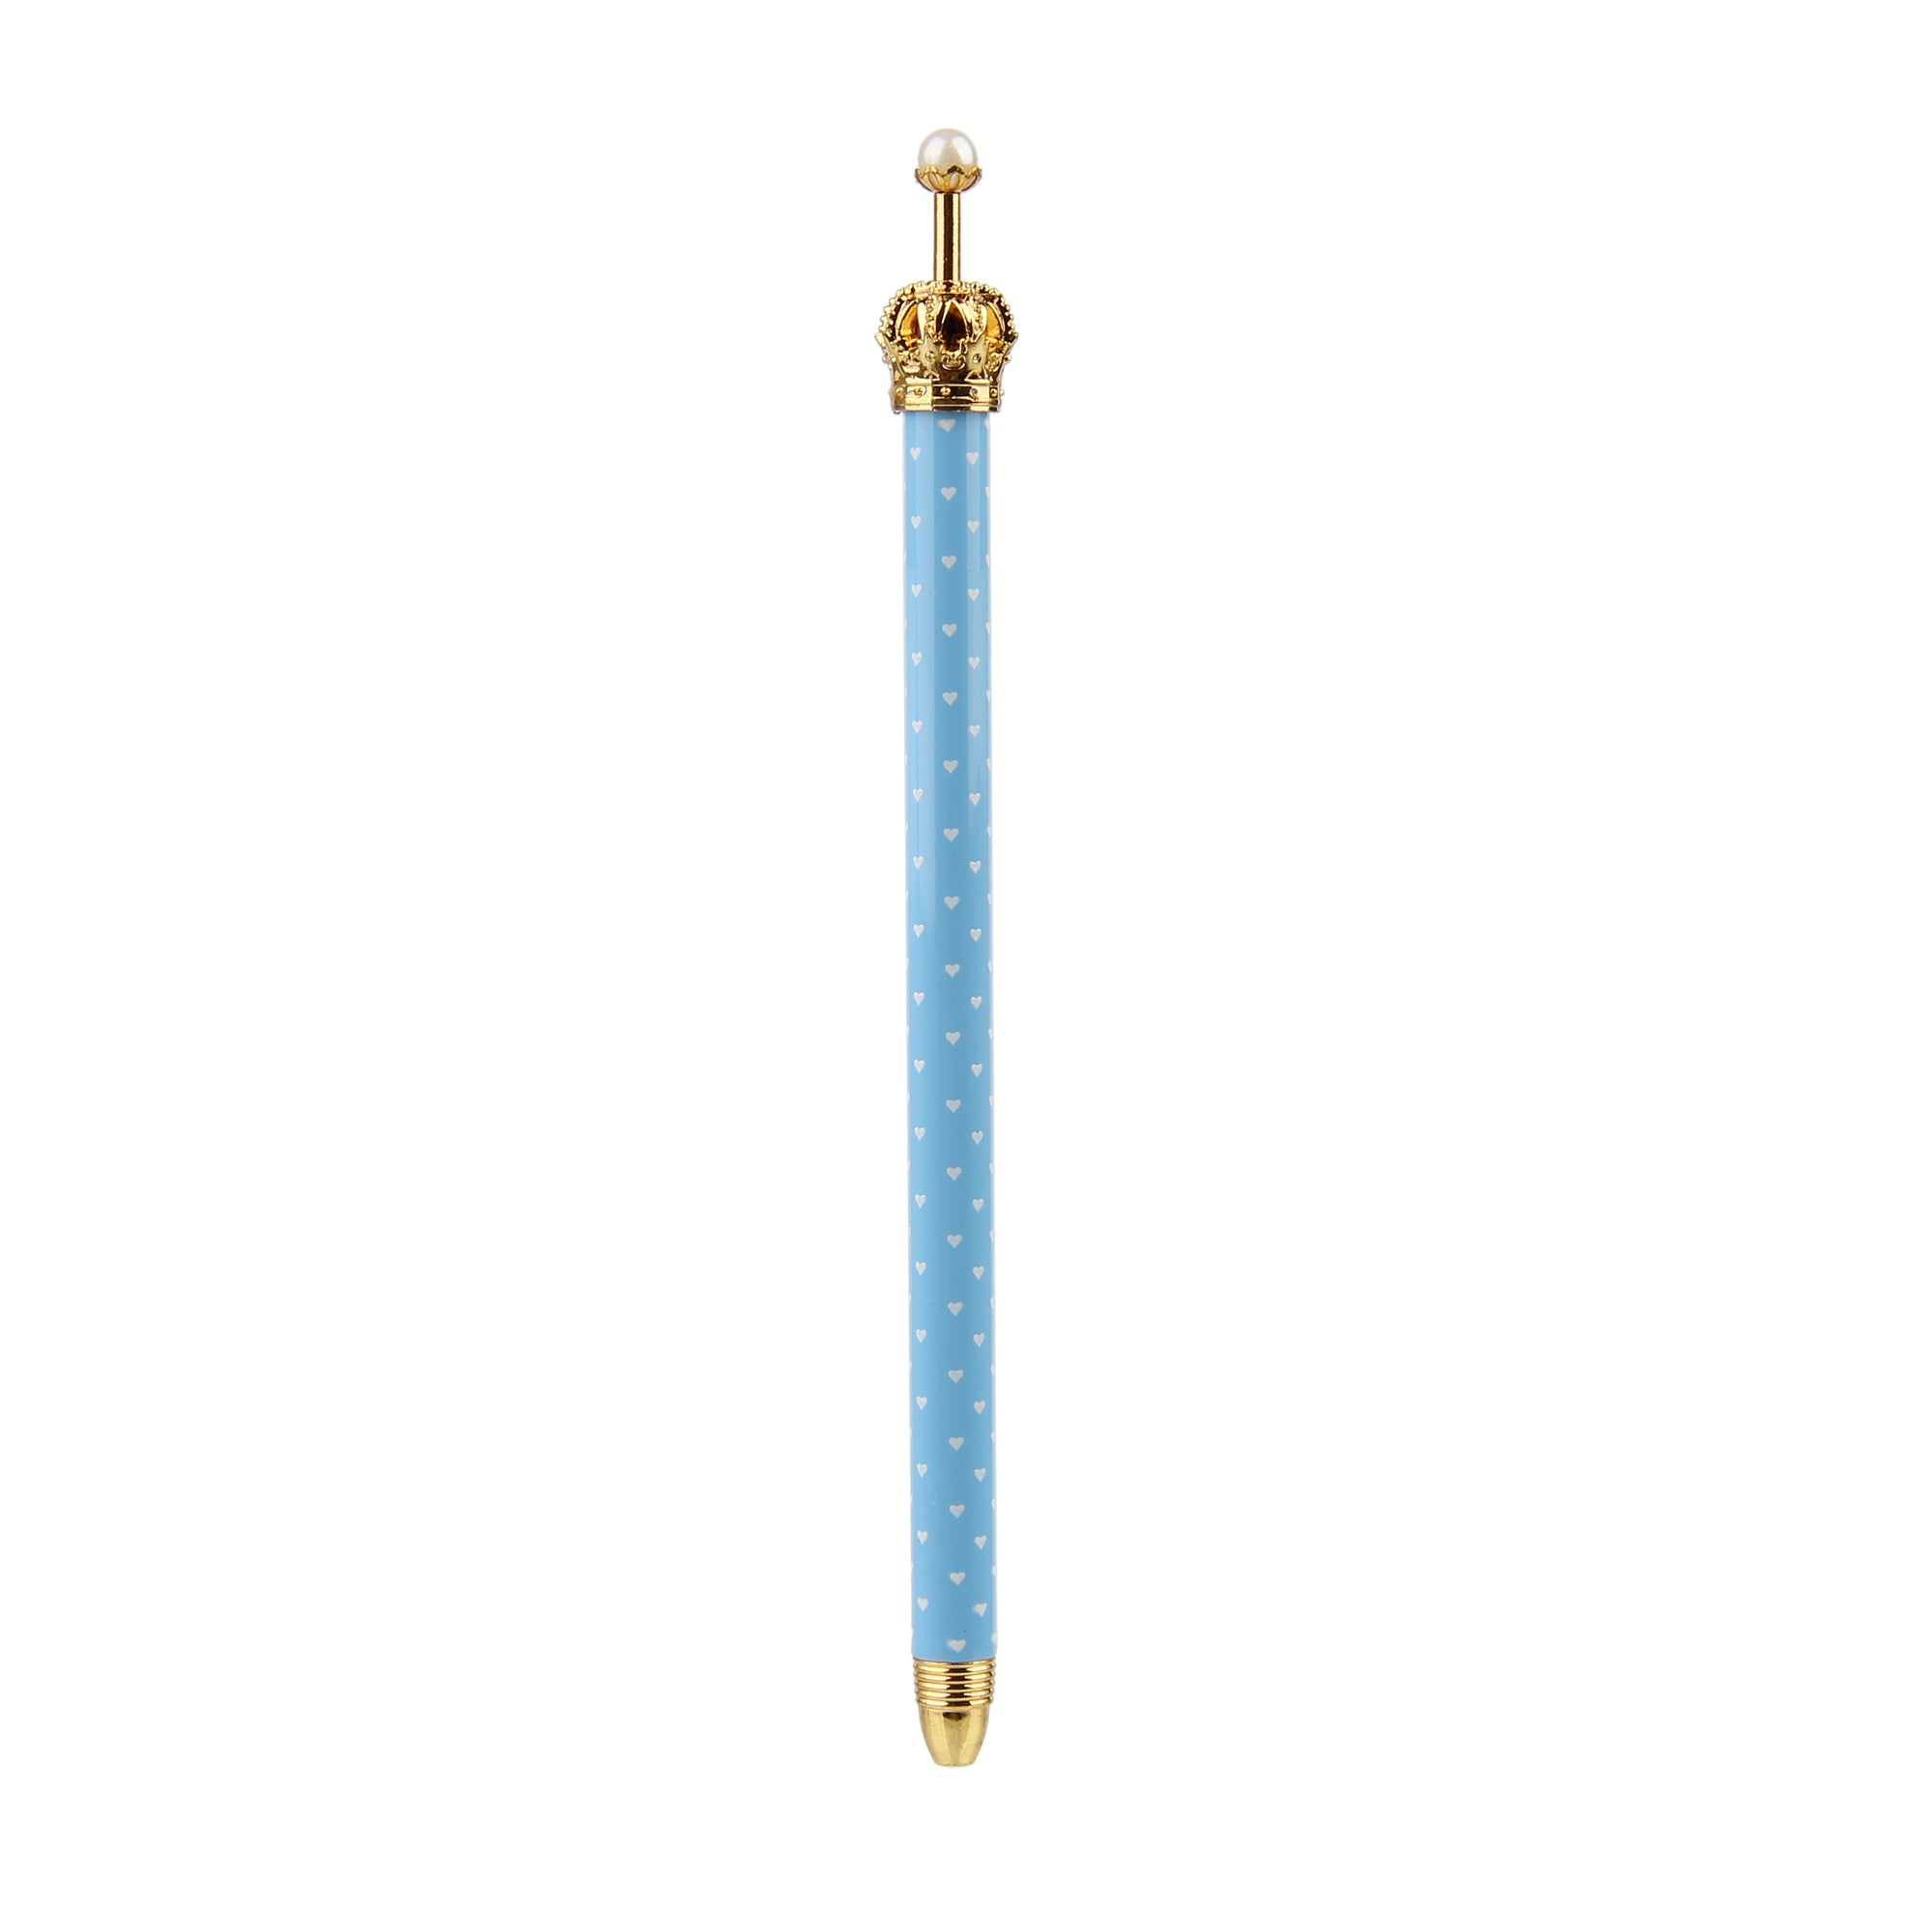 Crown Pen - Light Blue